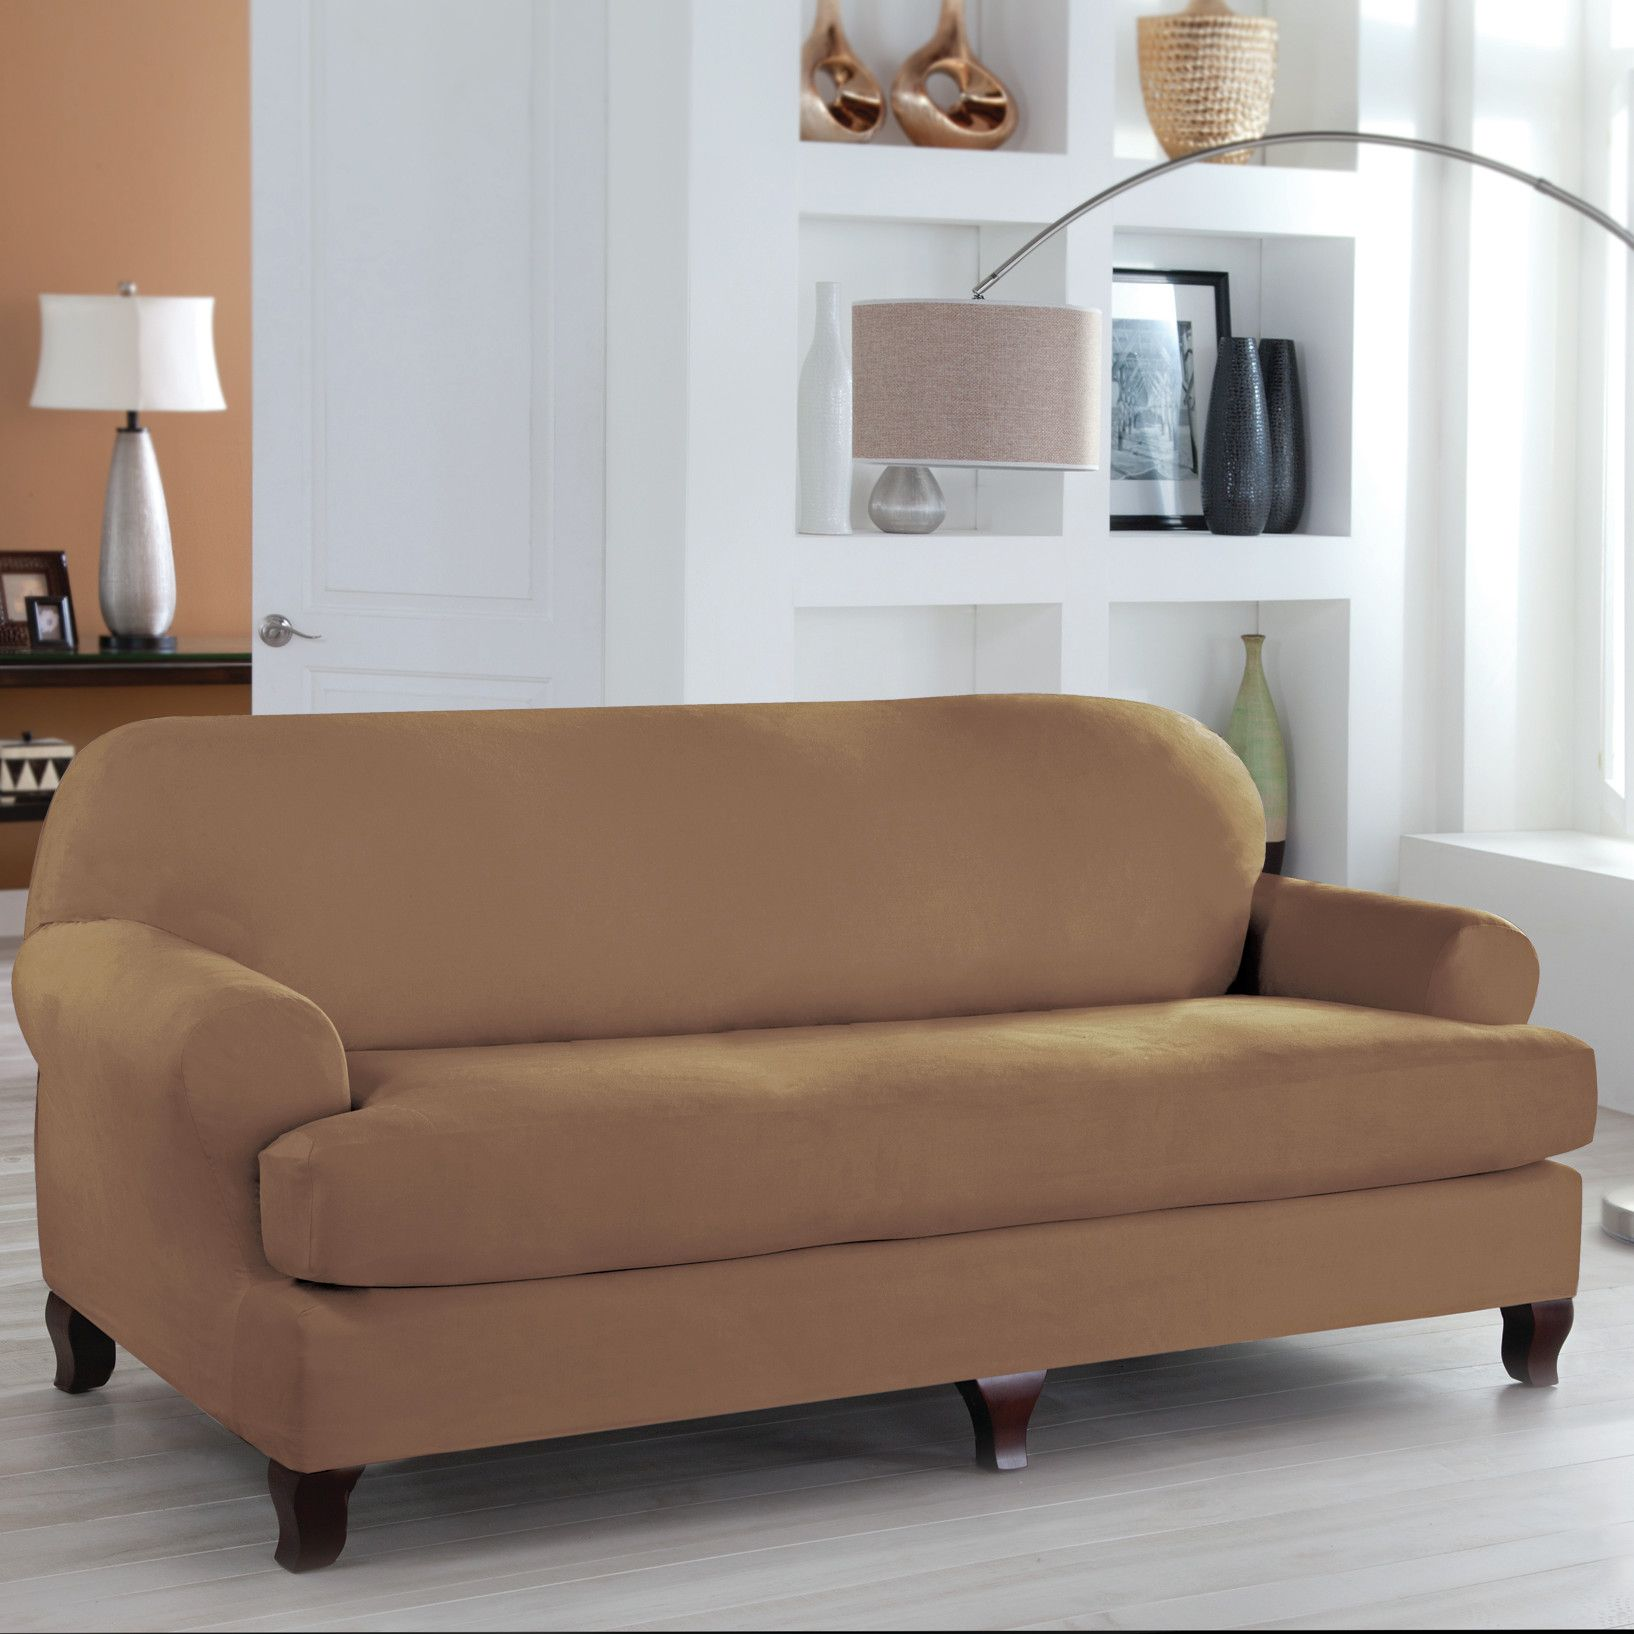 cool couch cover ideas. Cool Crate And Barrel Couch Covers , Great 51 About Remodel Cover Ideas